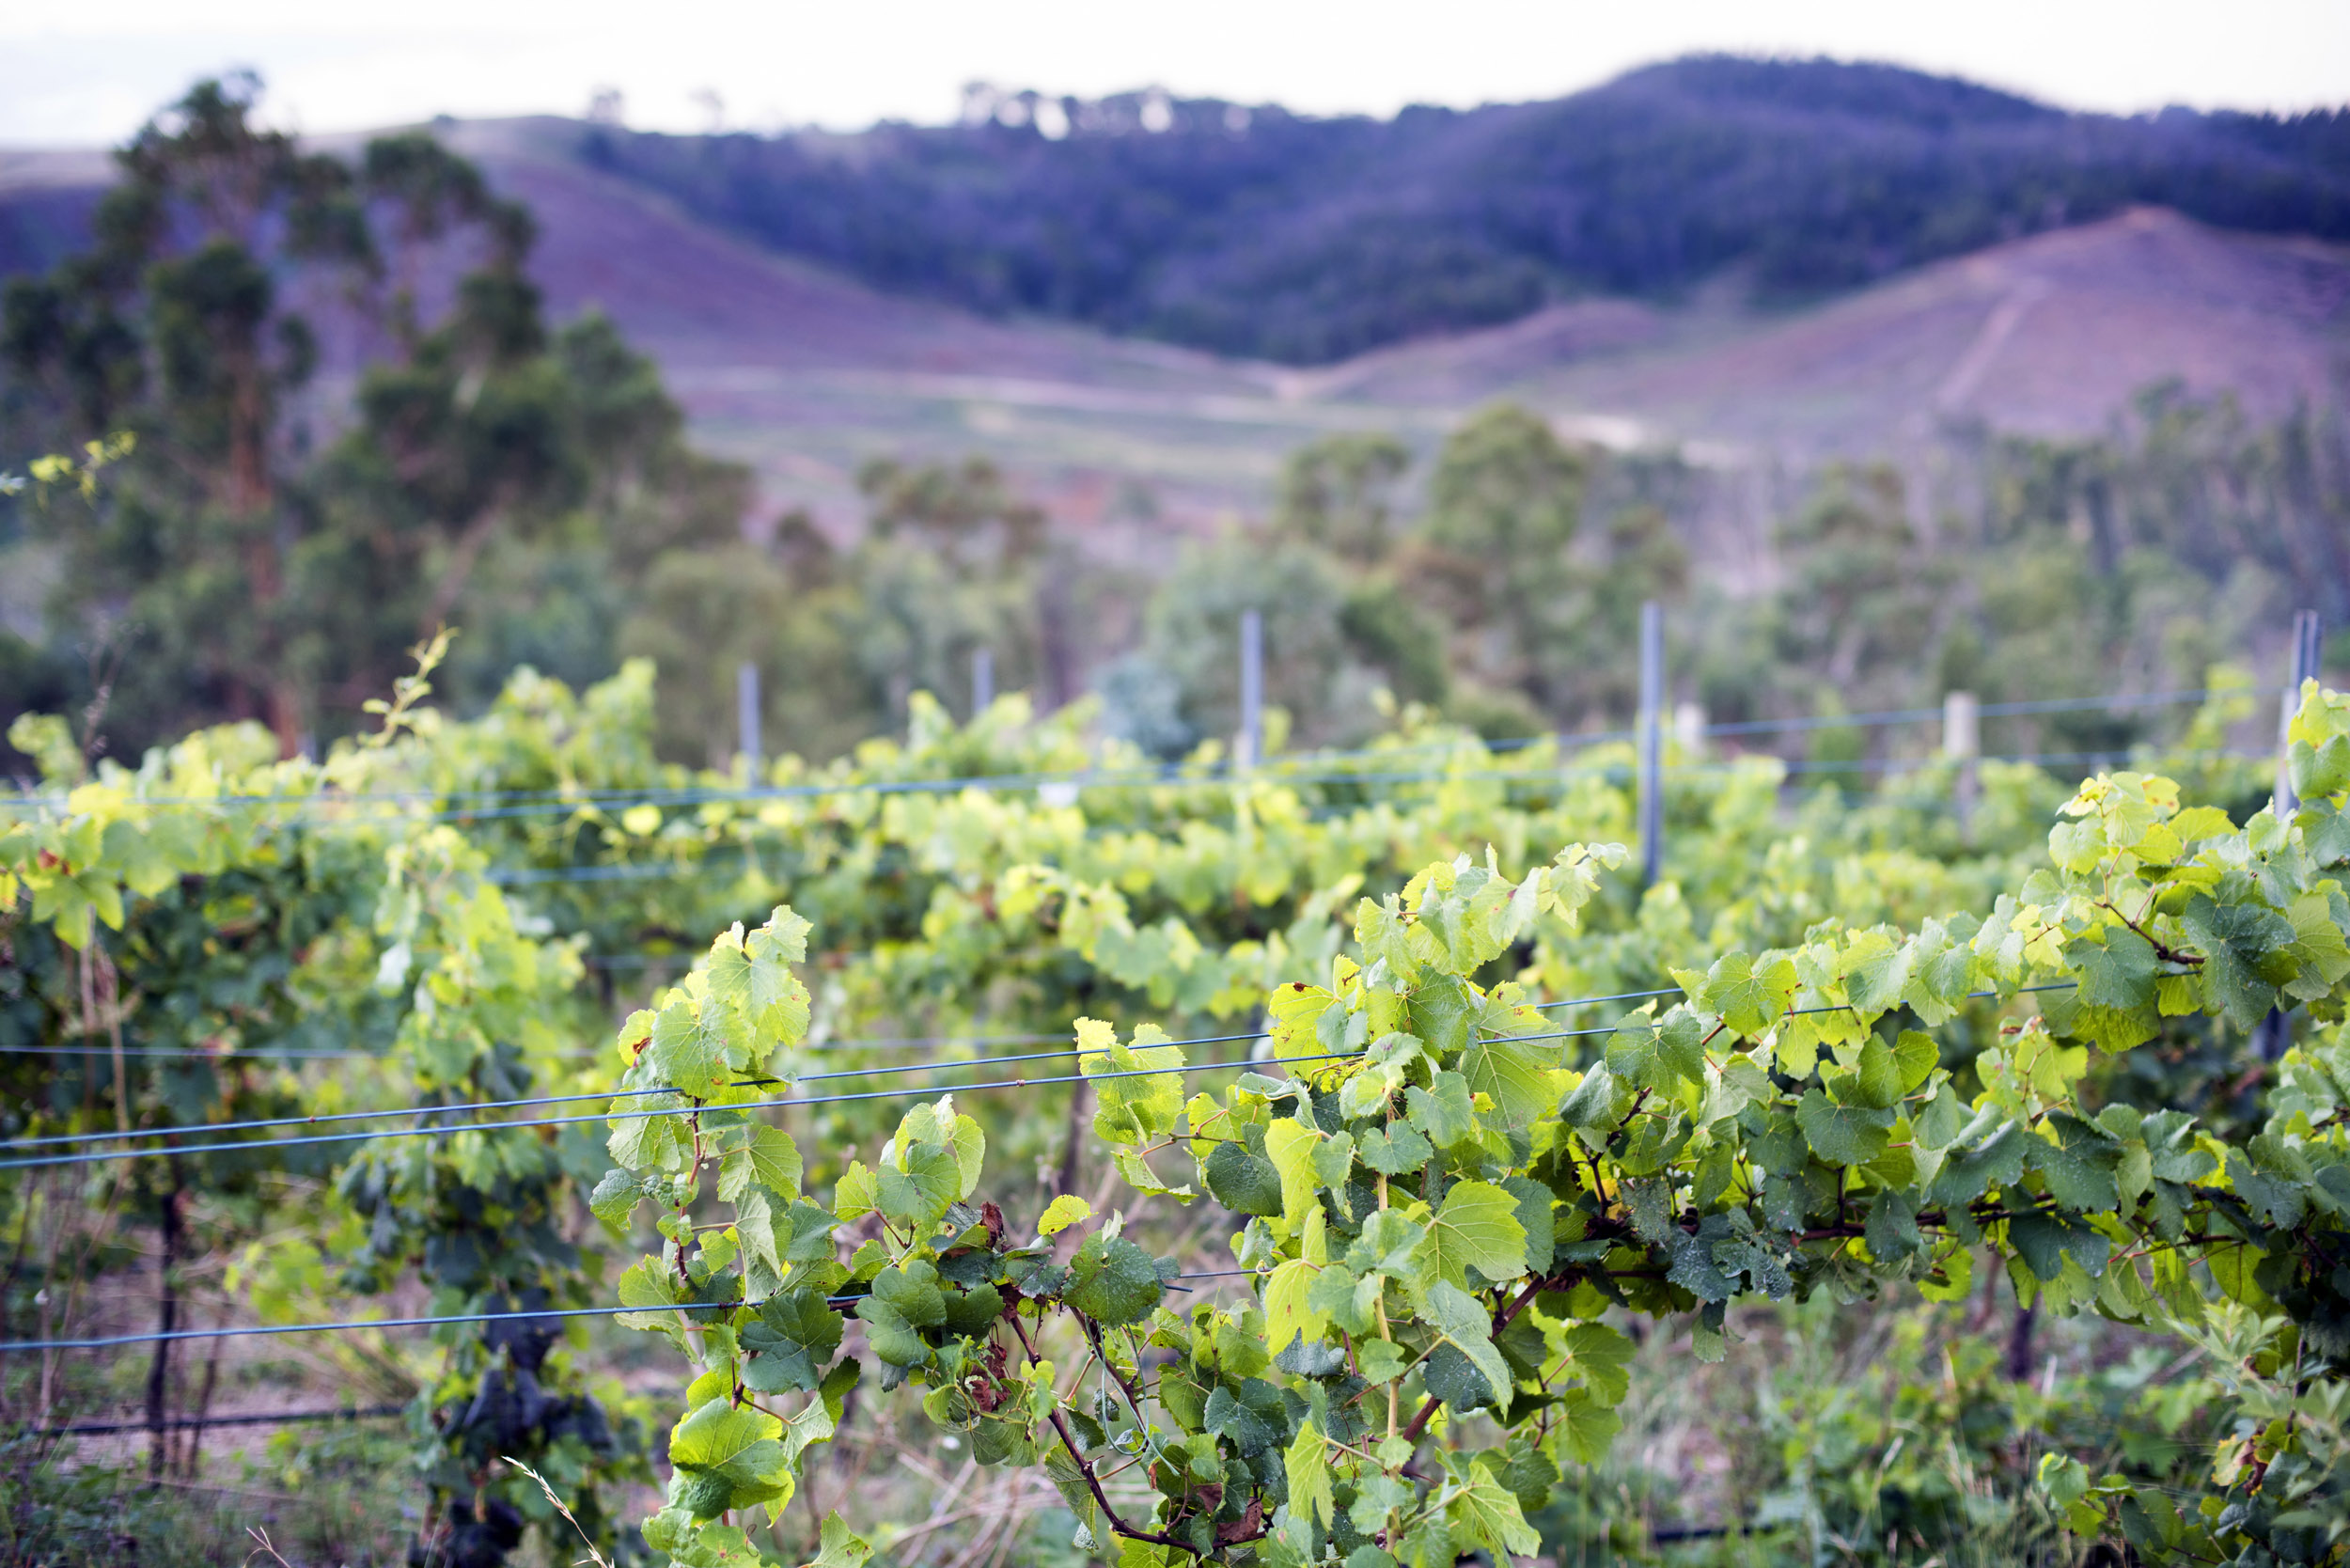 Leafy green vineyards and vines in Australia in a close up view growing on a winery in a valley between hills in a viticulture, viniculture and winemaking concept